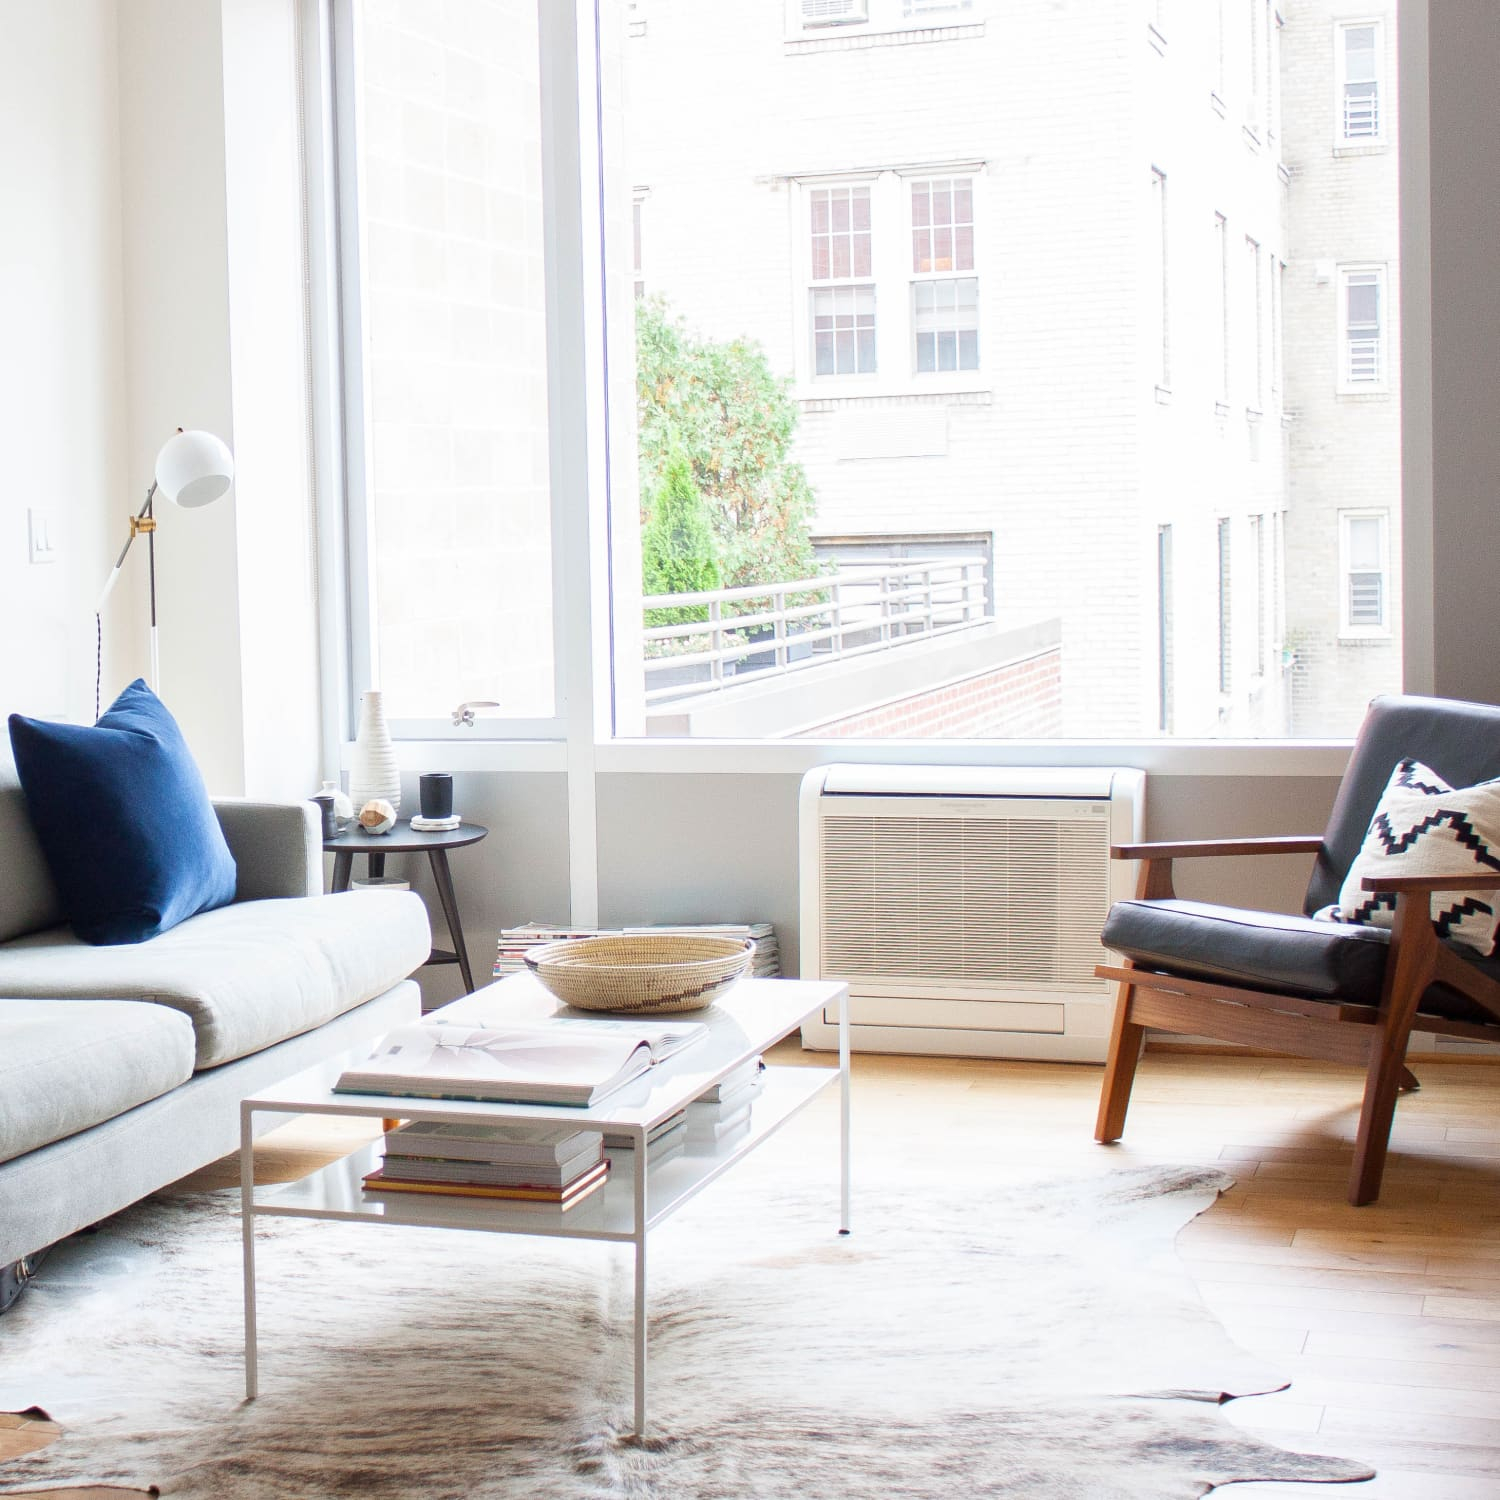 Best Small Living Room Design Ideas Apartment Therapy for 13 Genius Ways How to Upgrade Apartment Living Room Setup